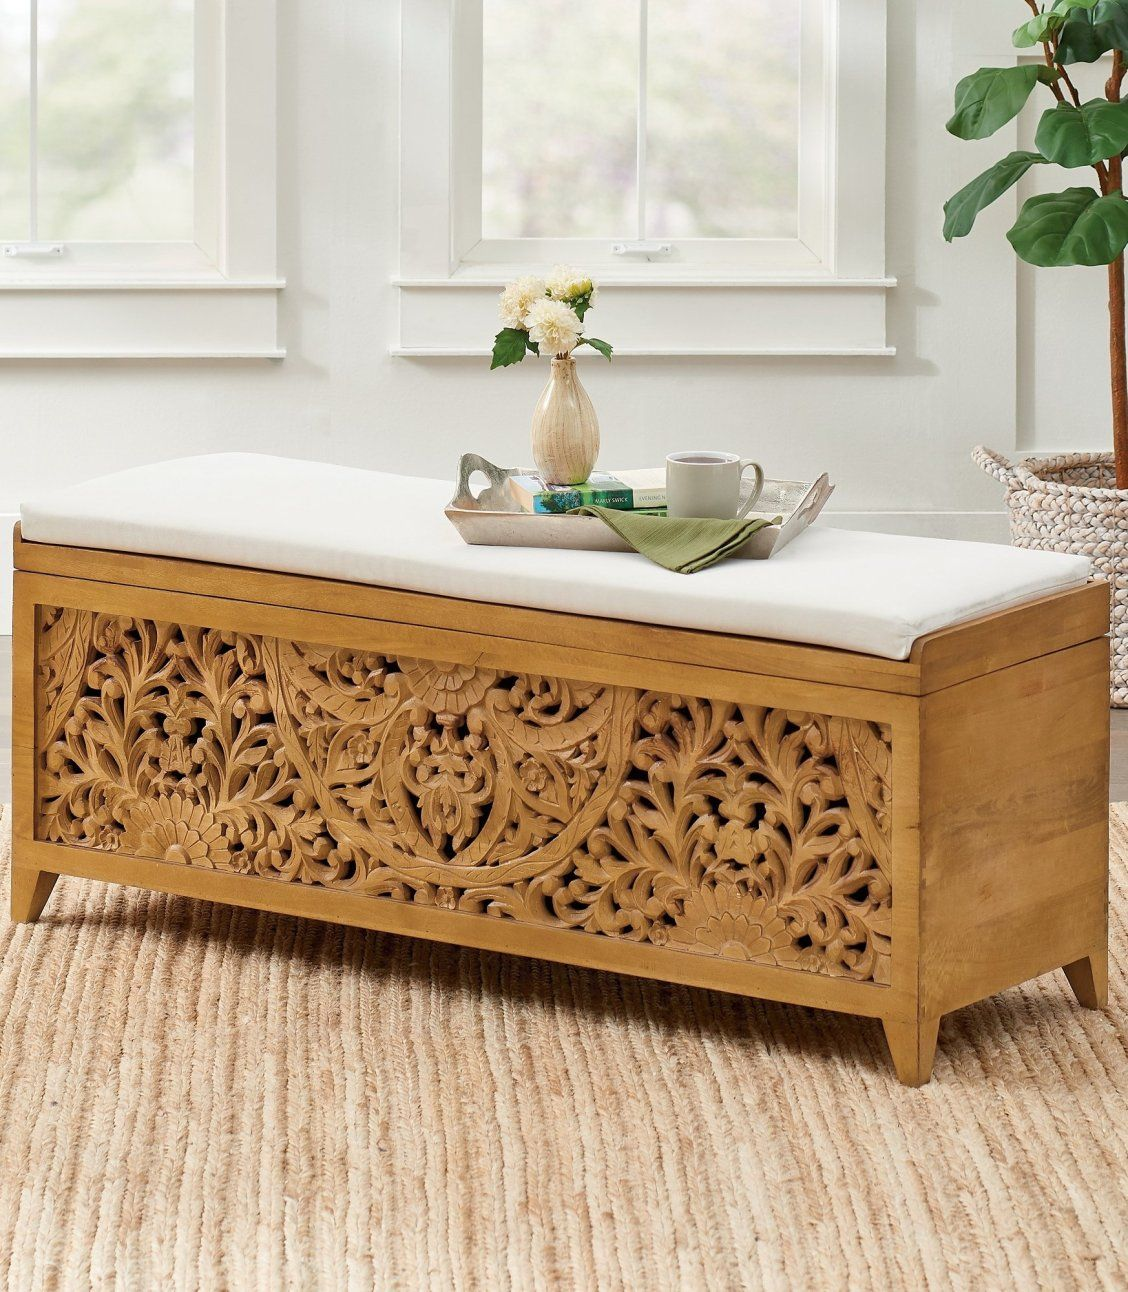 Marisol Storage Bench Cushion In 2020 Storage Bench Indoor Furniture Wood Storage Bench